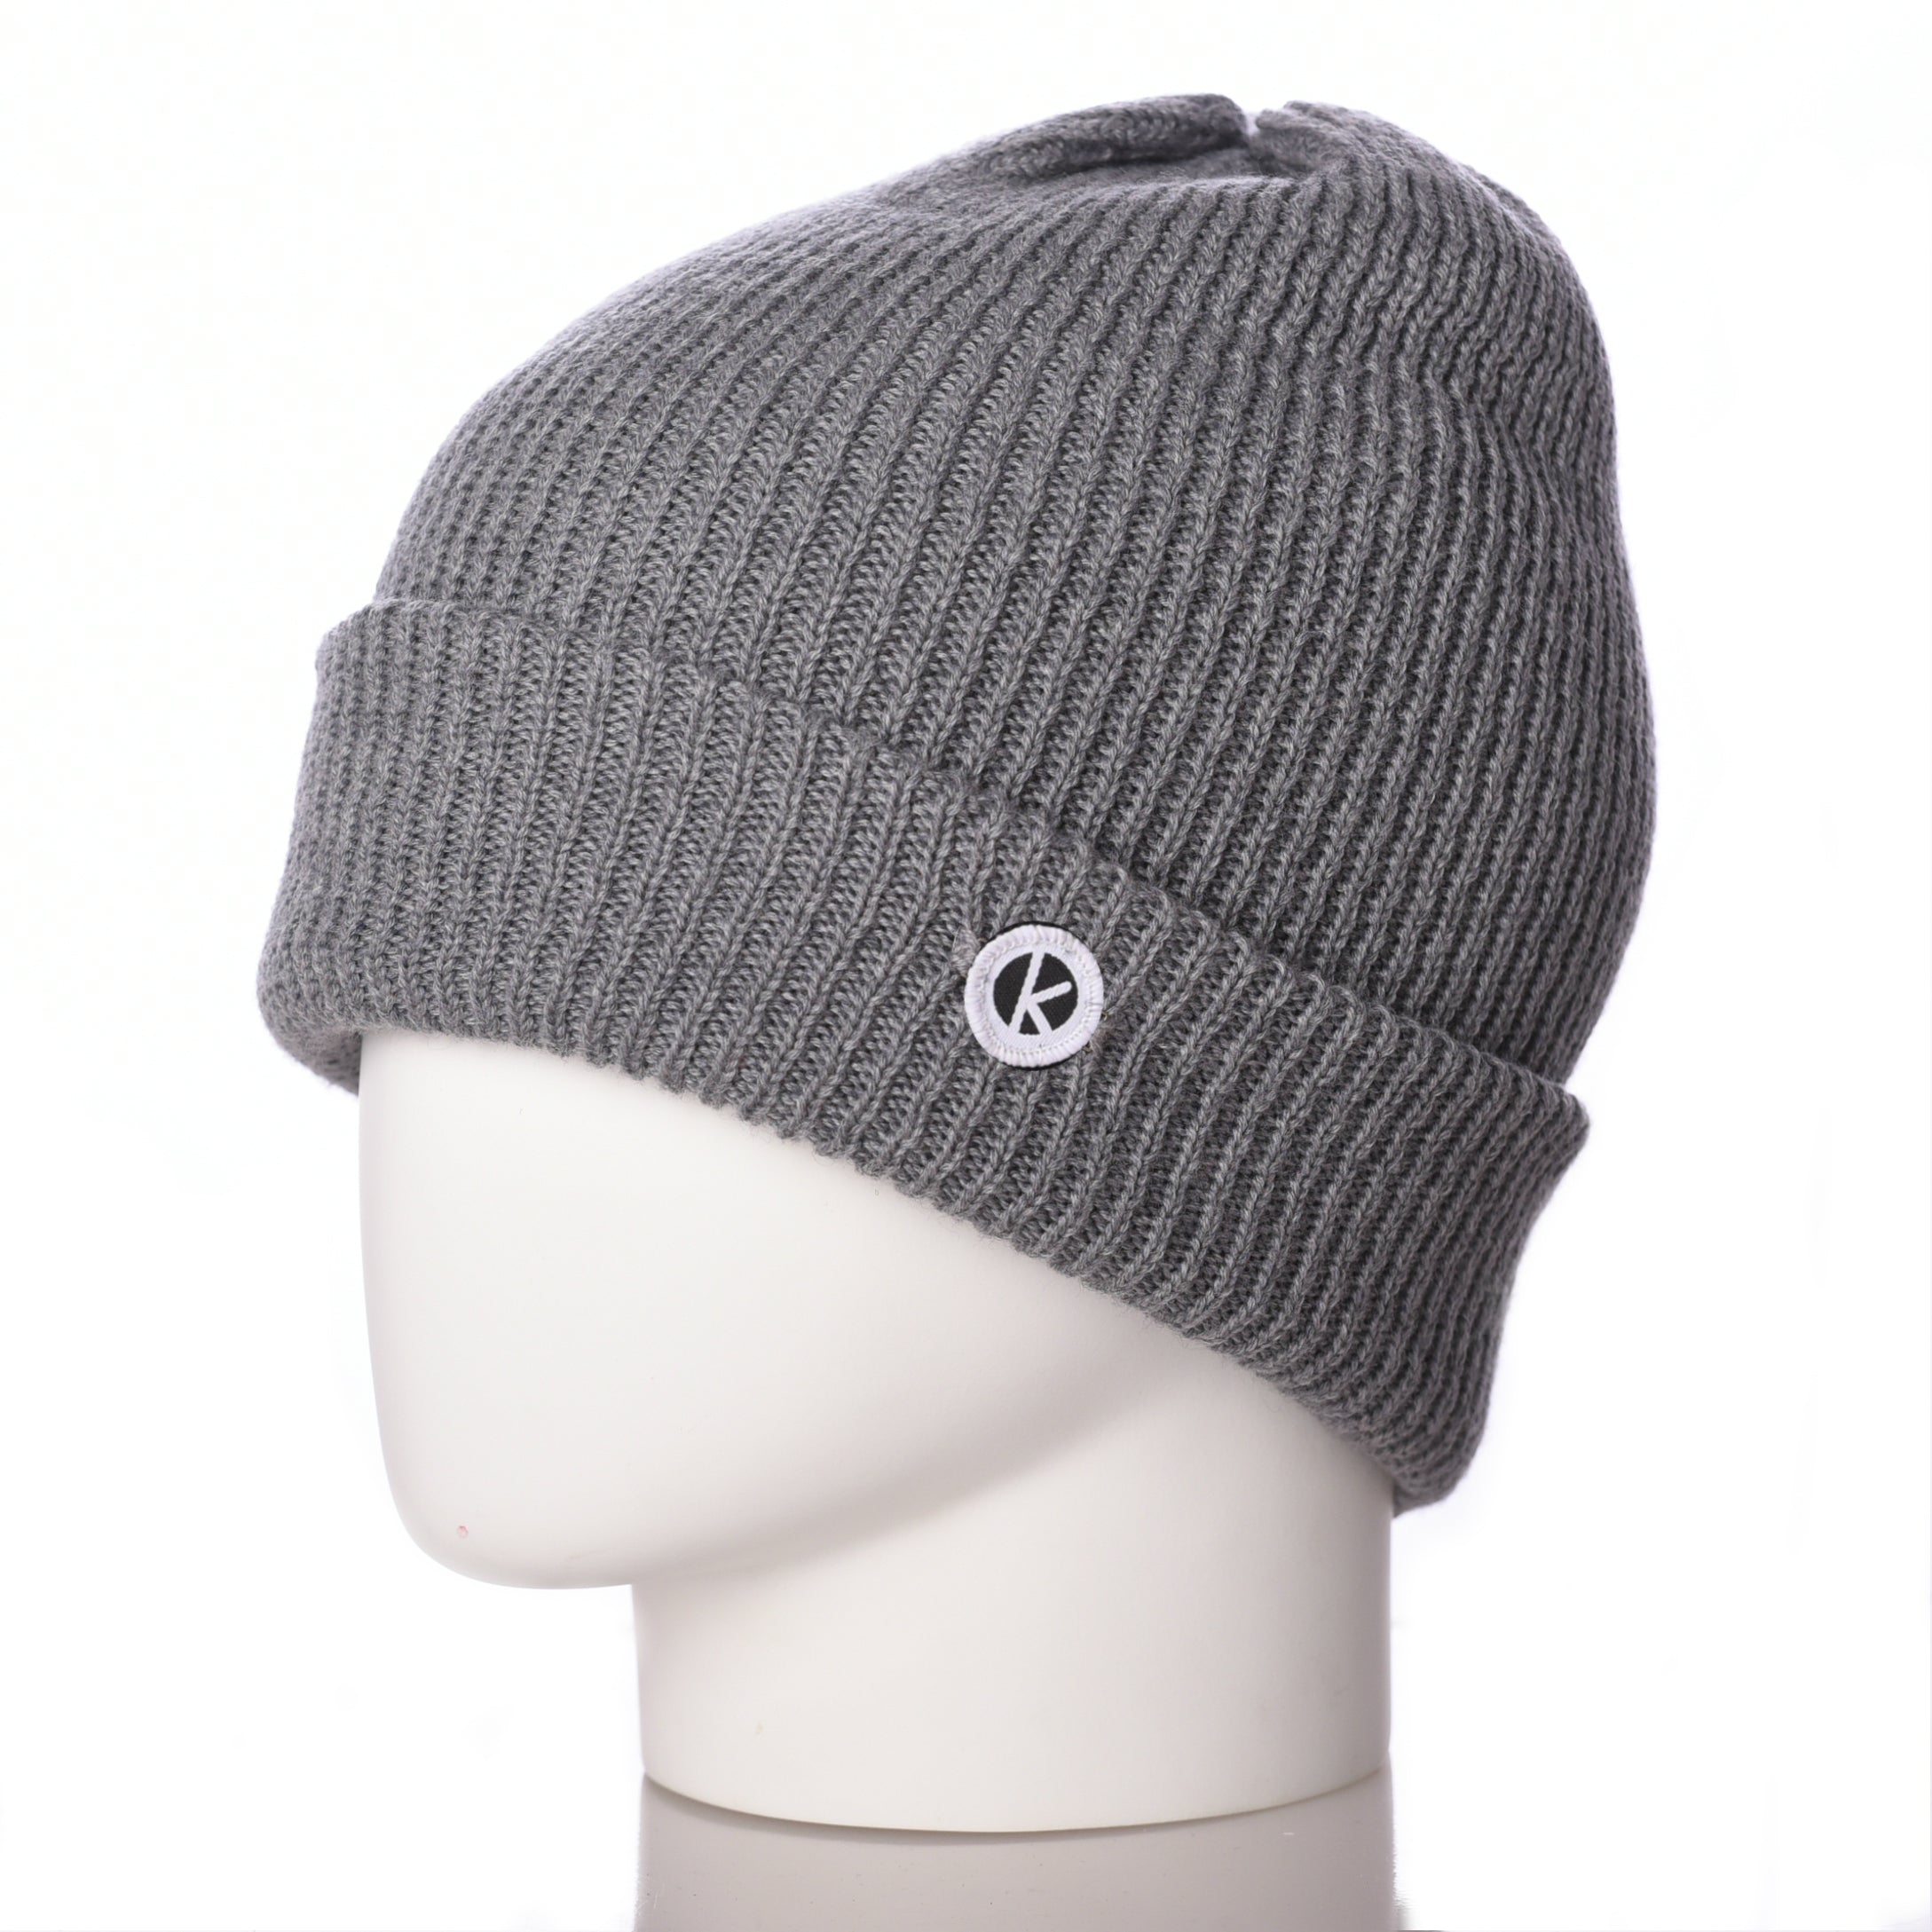 Bowen Turn Up Merino Wool Beanie - Grey